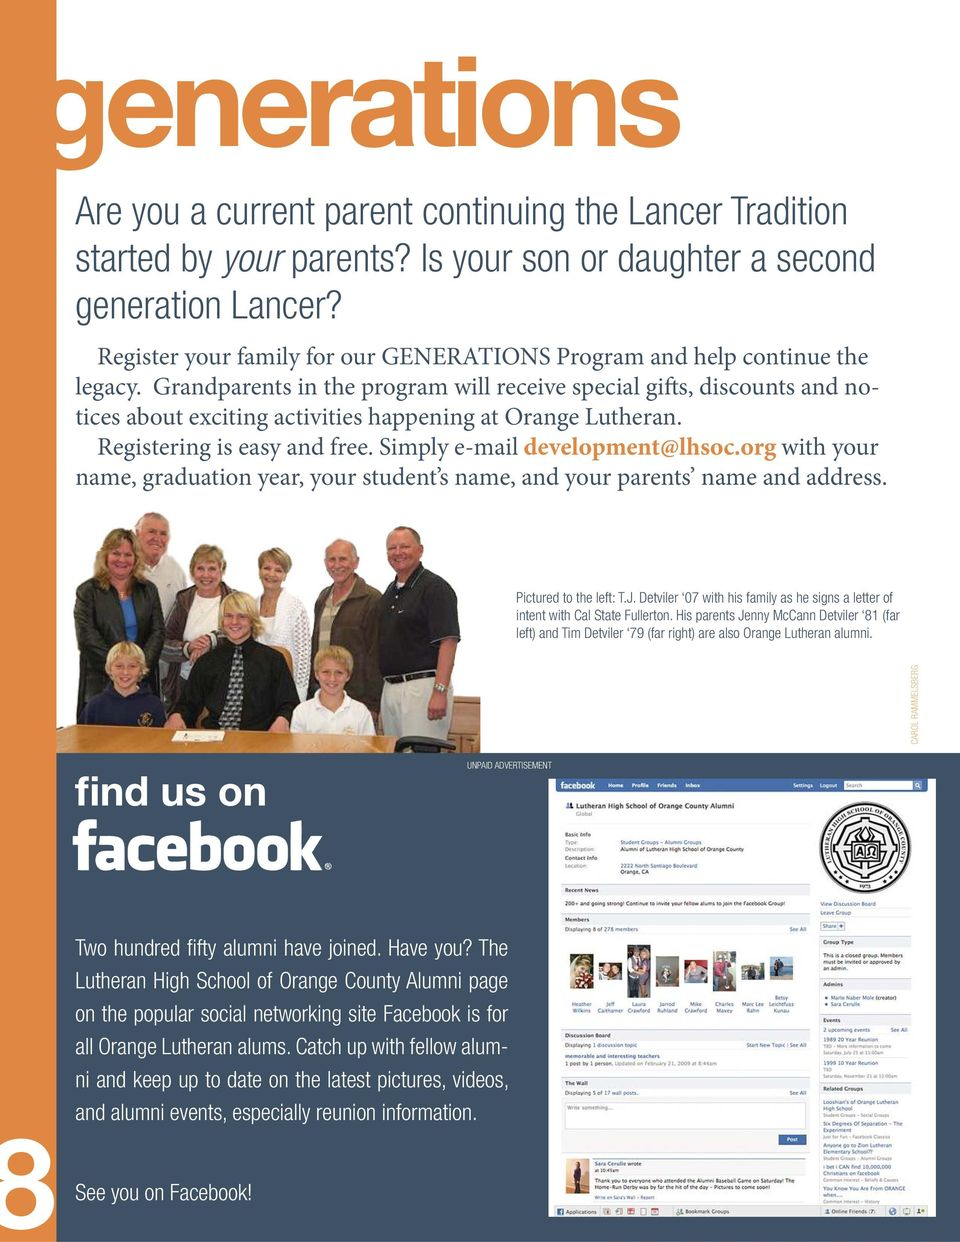 Grandparents in the program will receive special gifts, discounts and notices about exciting activities happening at Orange Lutheran. Registering is easy and free. Simply e-mail development@lhsoc.